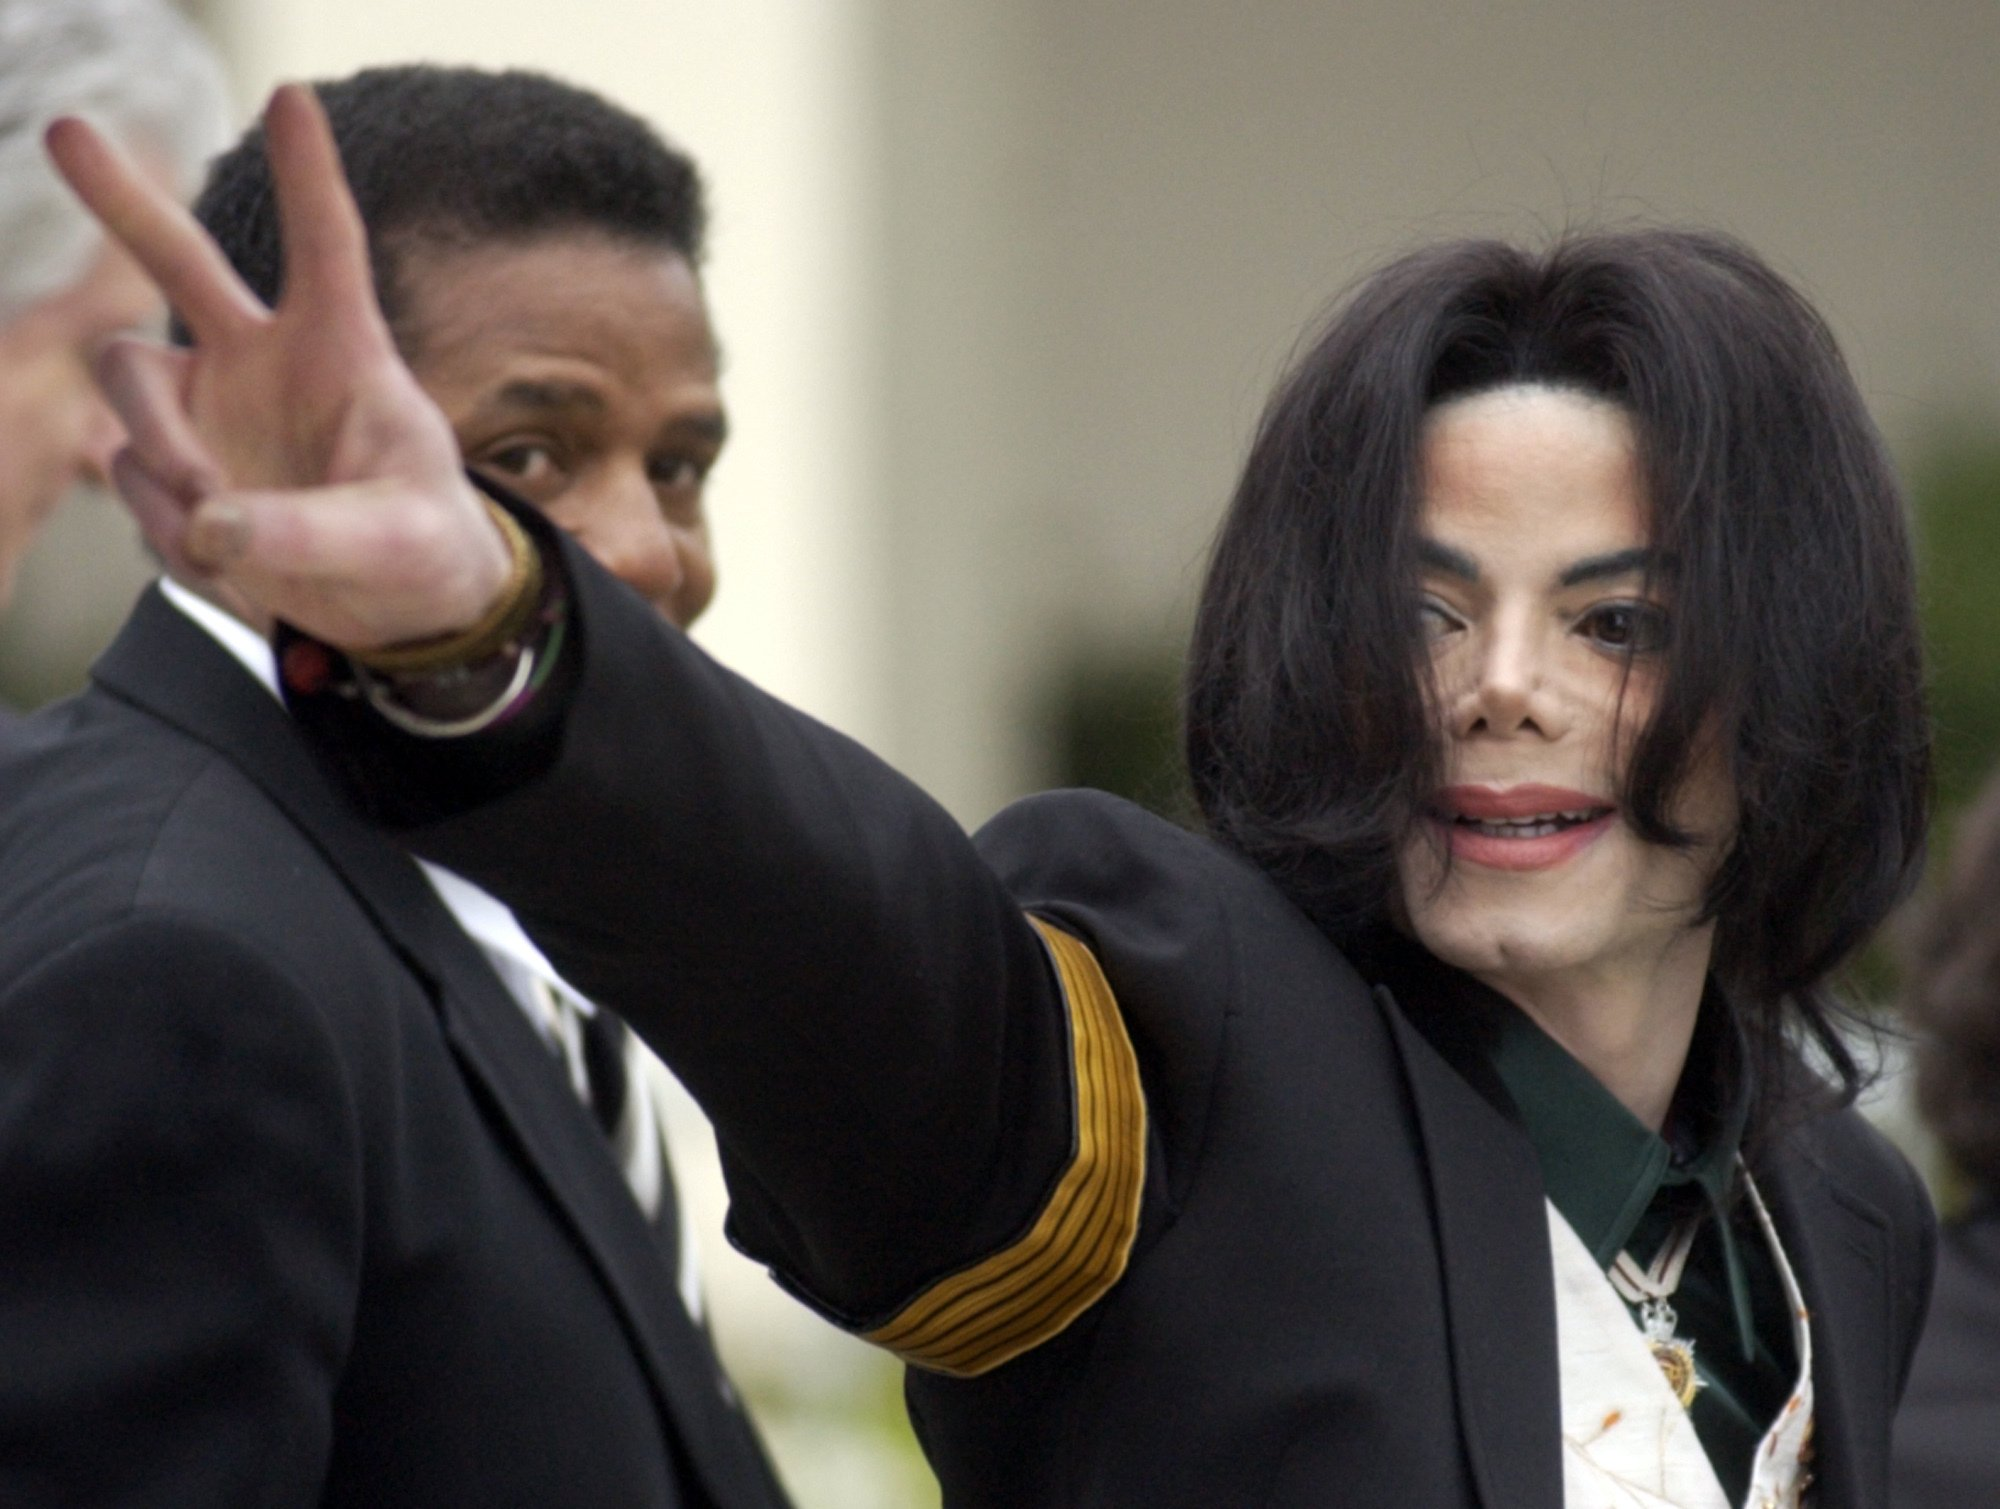 Michael Jackson's legacy clouded by dark documentary